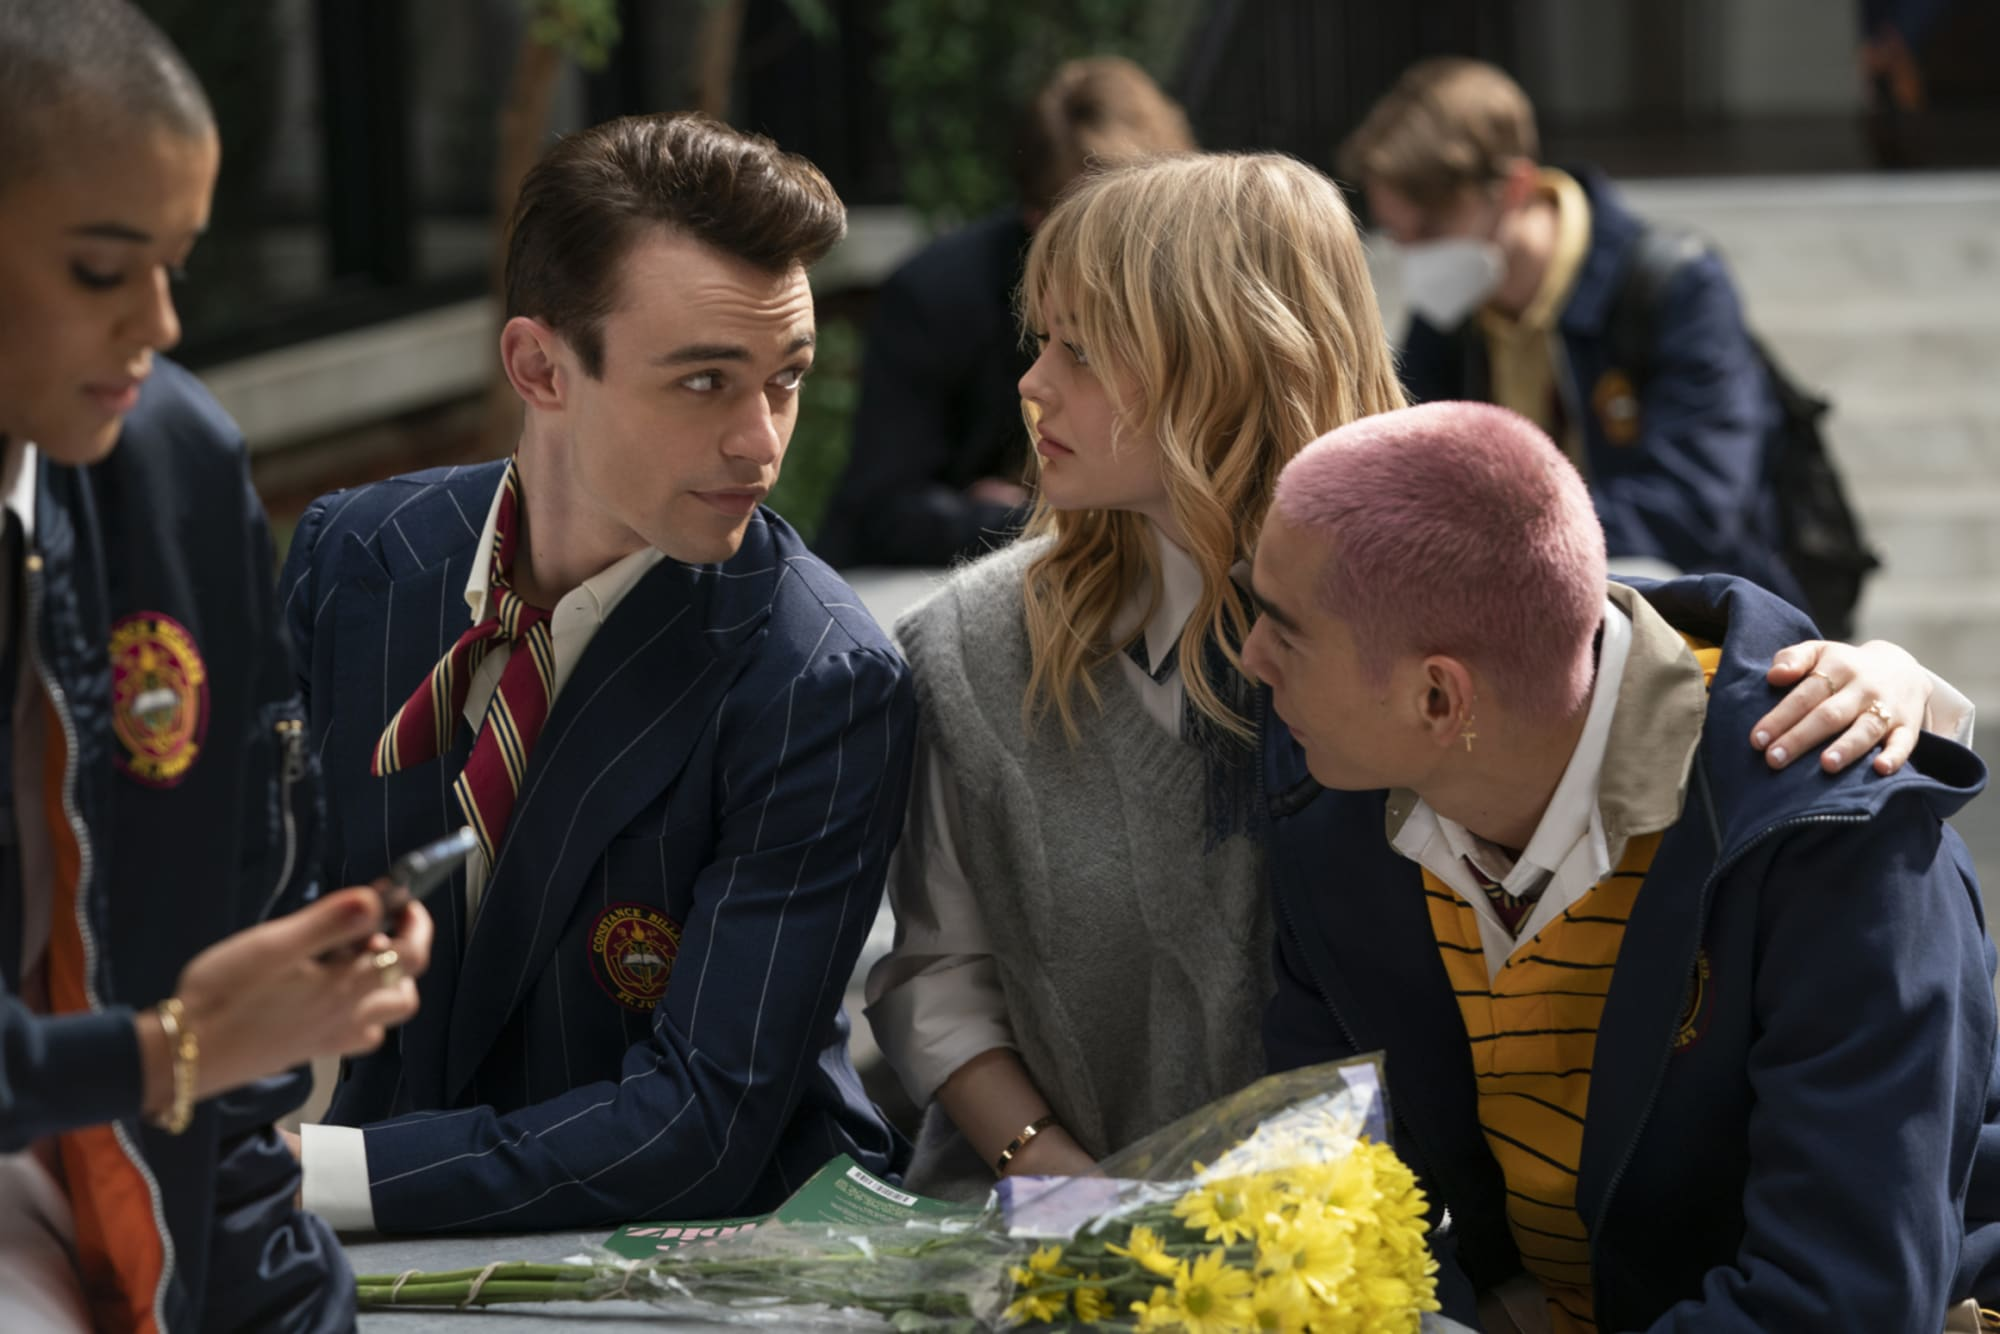 Gossip Girl (2021) Episode 6 spoilers: Are Audrey, Aki, and Max on the rise?